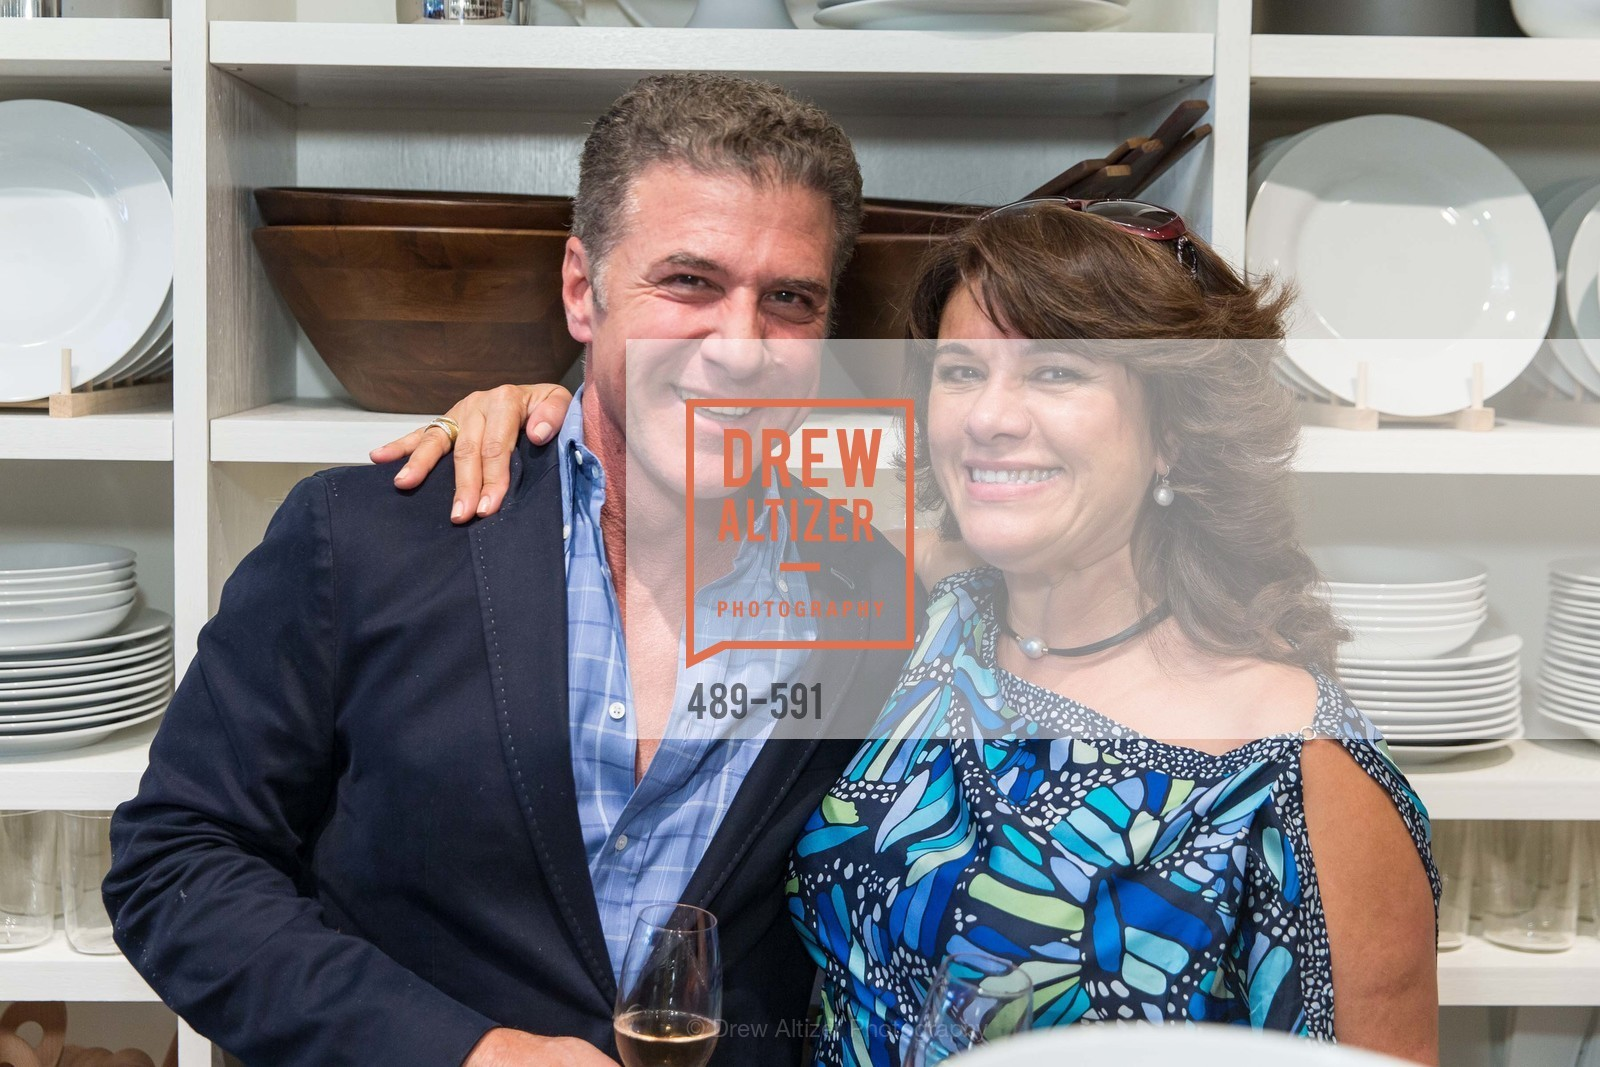 Chef Michael Chiarello, Junny Gonzalez, CHUCK WILLIAMS Birthday Celebration, US, October 2nd, 2014,Drew Altizer, Drew Altizer Photography, full-service agency, private events, San Francisco photographer, photographer california